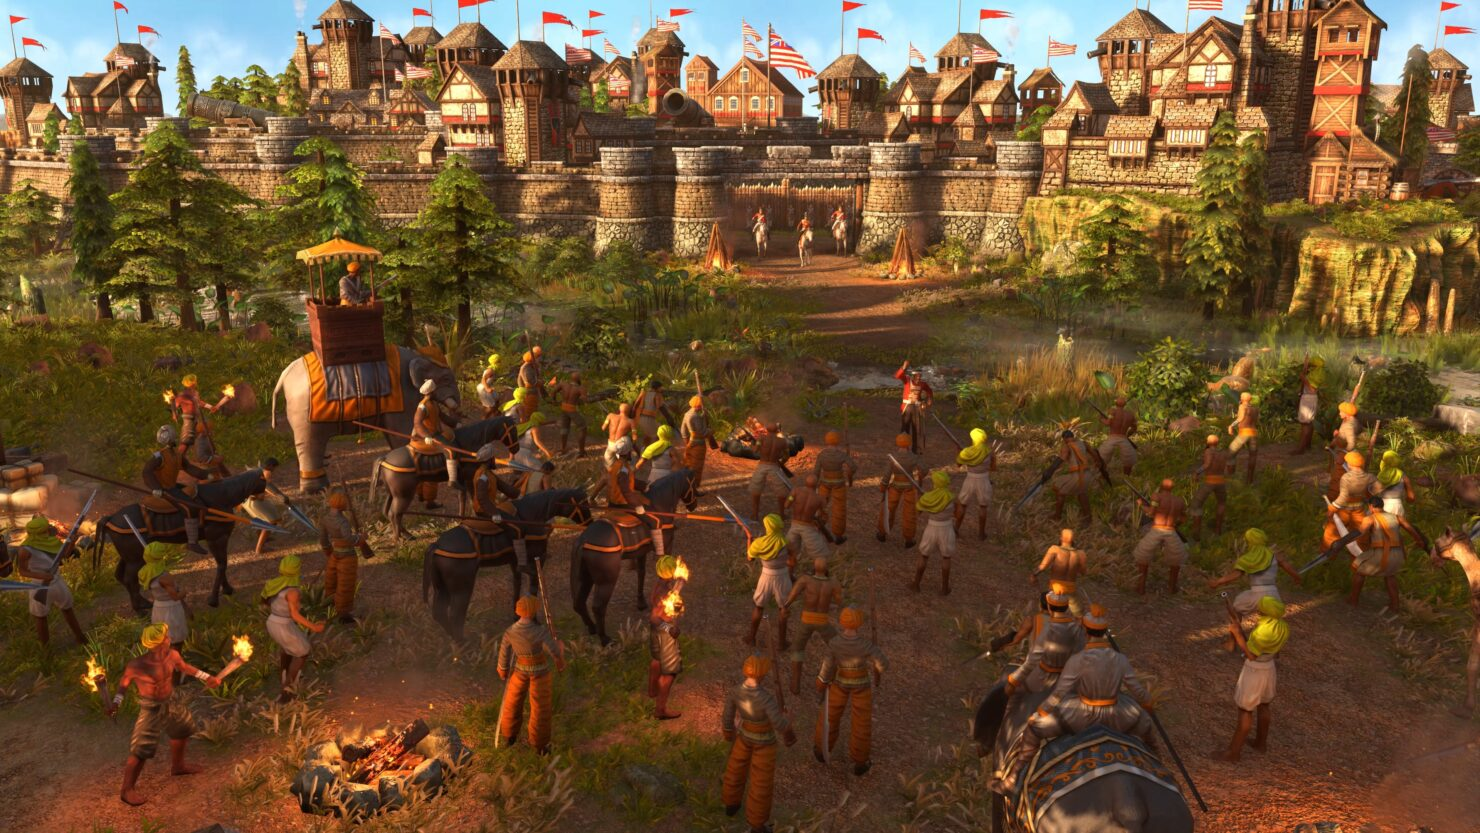 age-of-empires-iii-definitive-edition-preview-05-asset-8